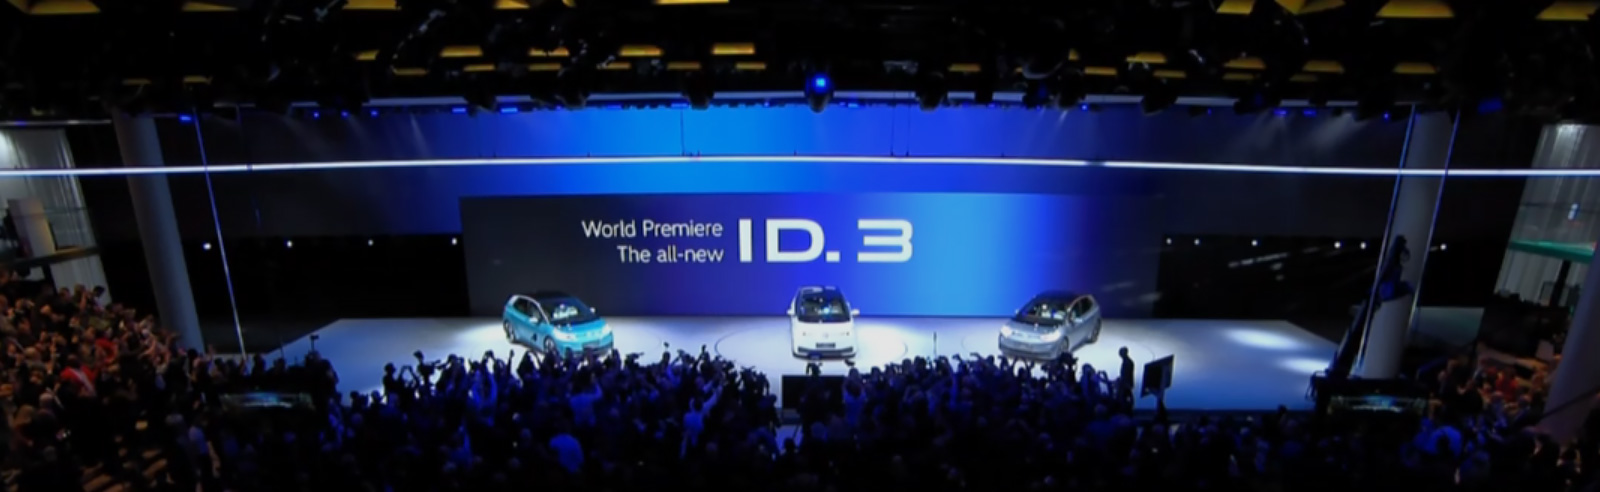 Volkswagen unveils the ID. Family, ID.3, new logo